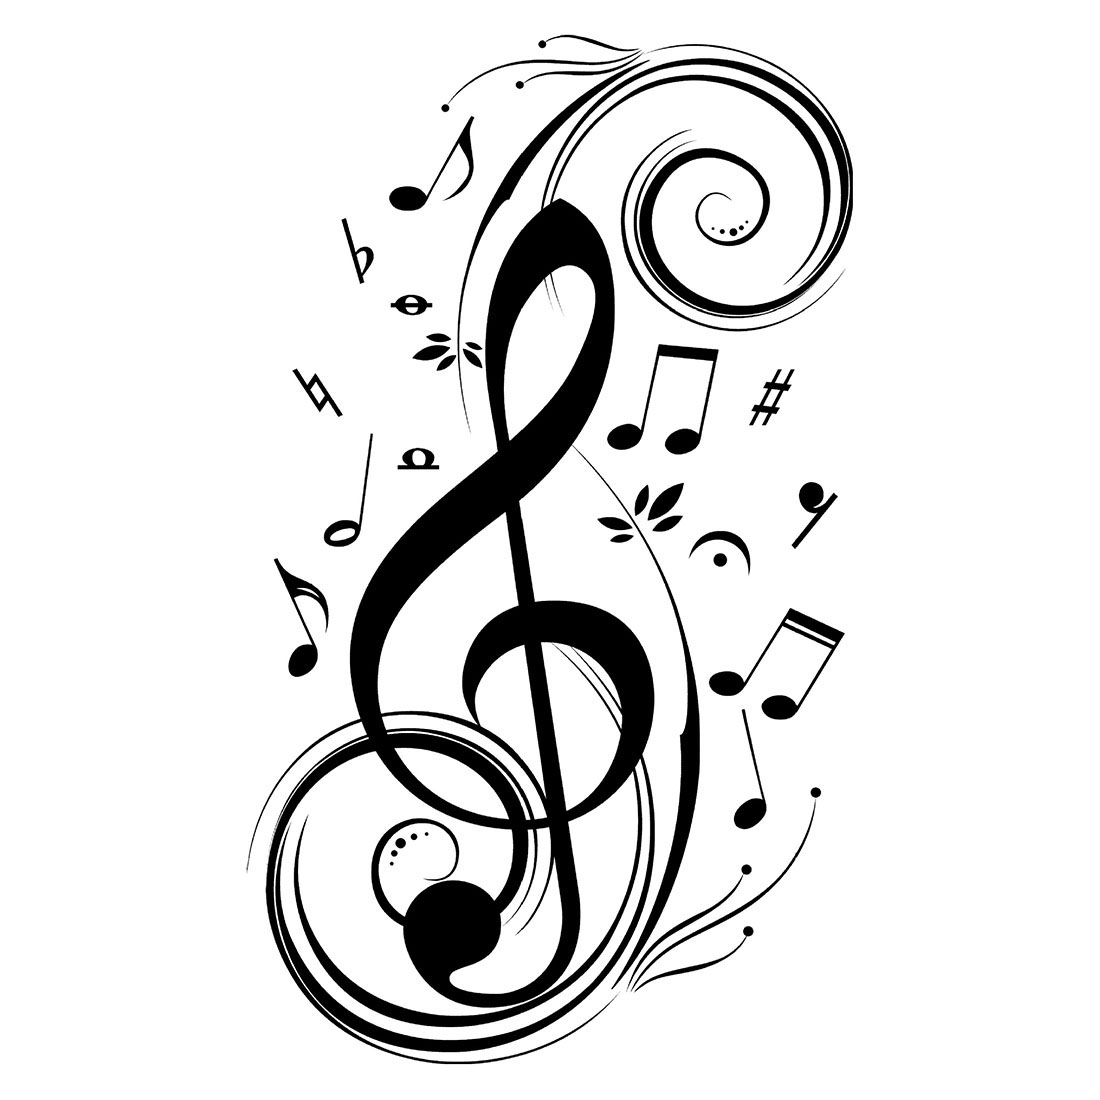 Beat Note music wall art stickers,vinyl wall stickers music decor,Graphic Art musical home decoration-black